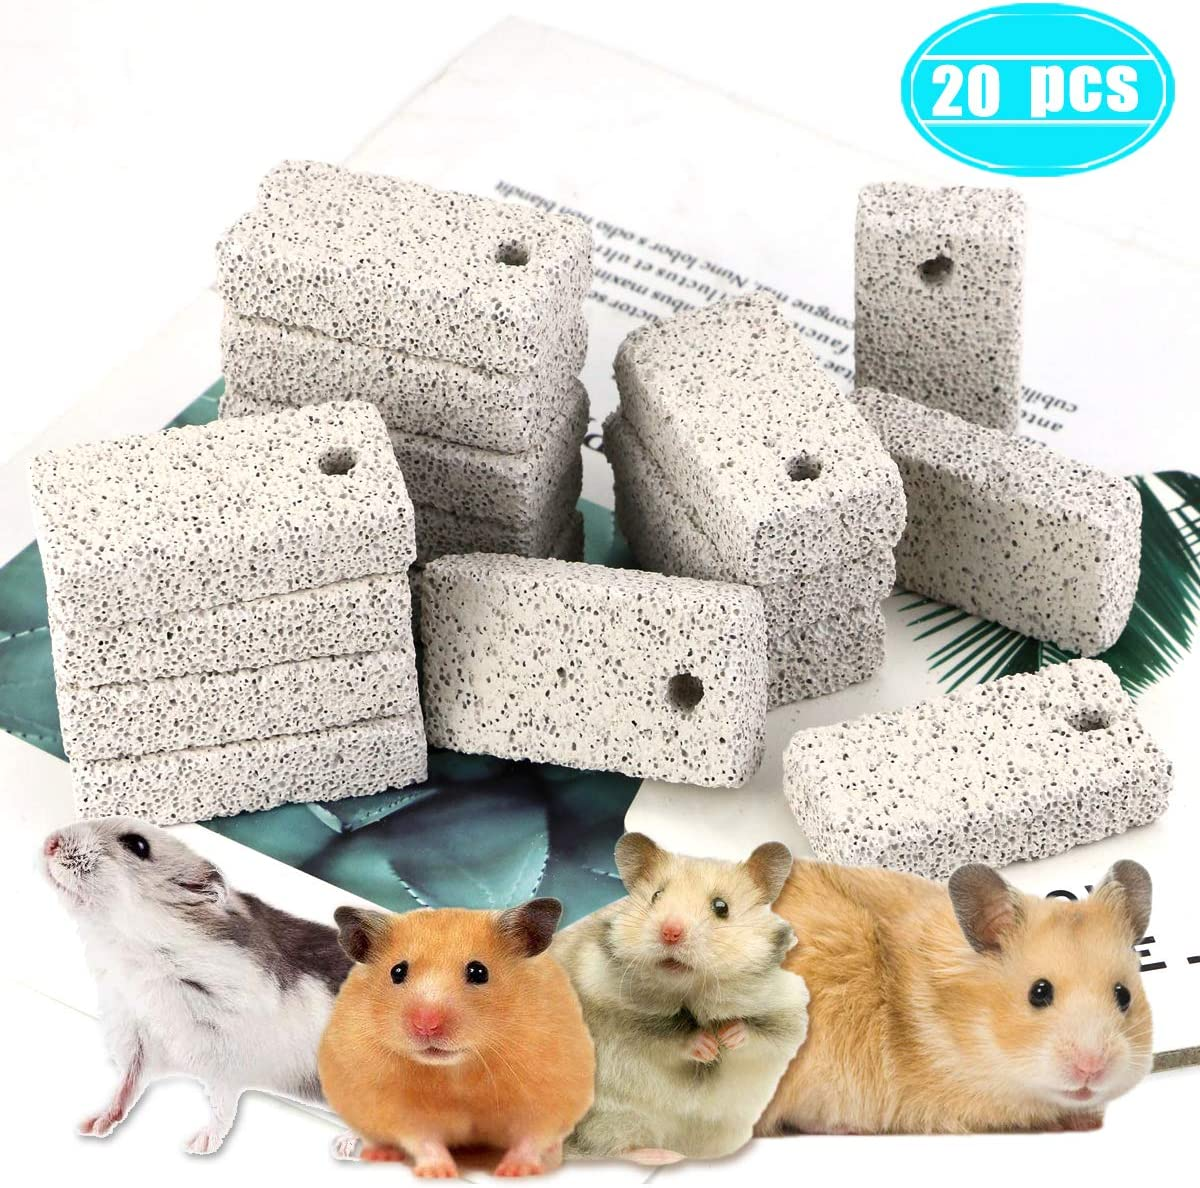 Newbested 20 Pcs Small Animal Pet Lava Bites Chews Toy Teeth Grinding Block Mineral Calcium Stone for Hamsters Parrot Chinchillas Rabbits